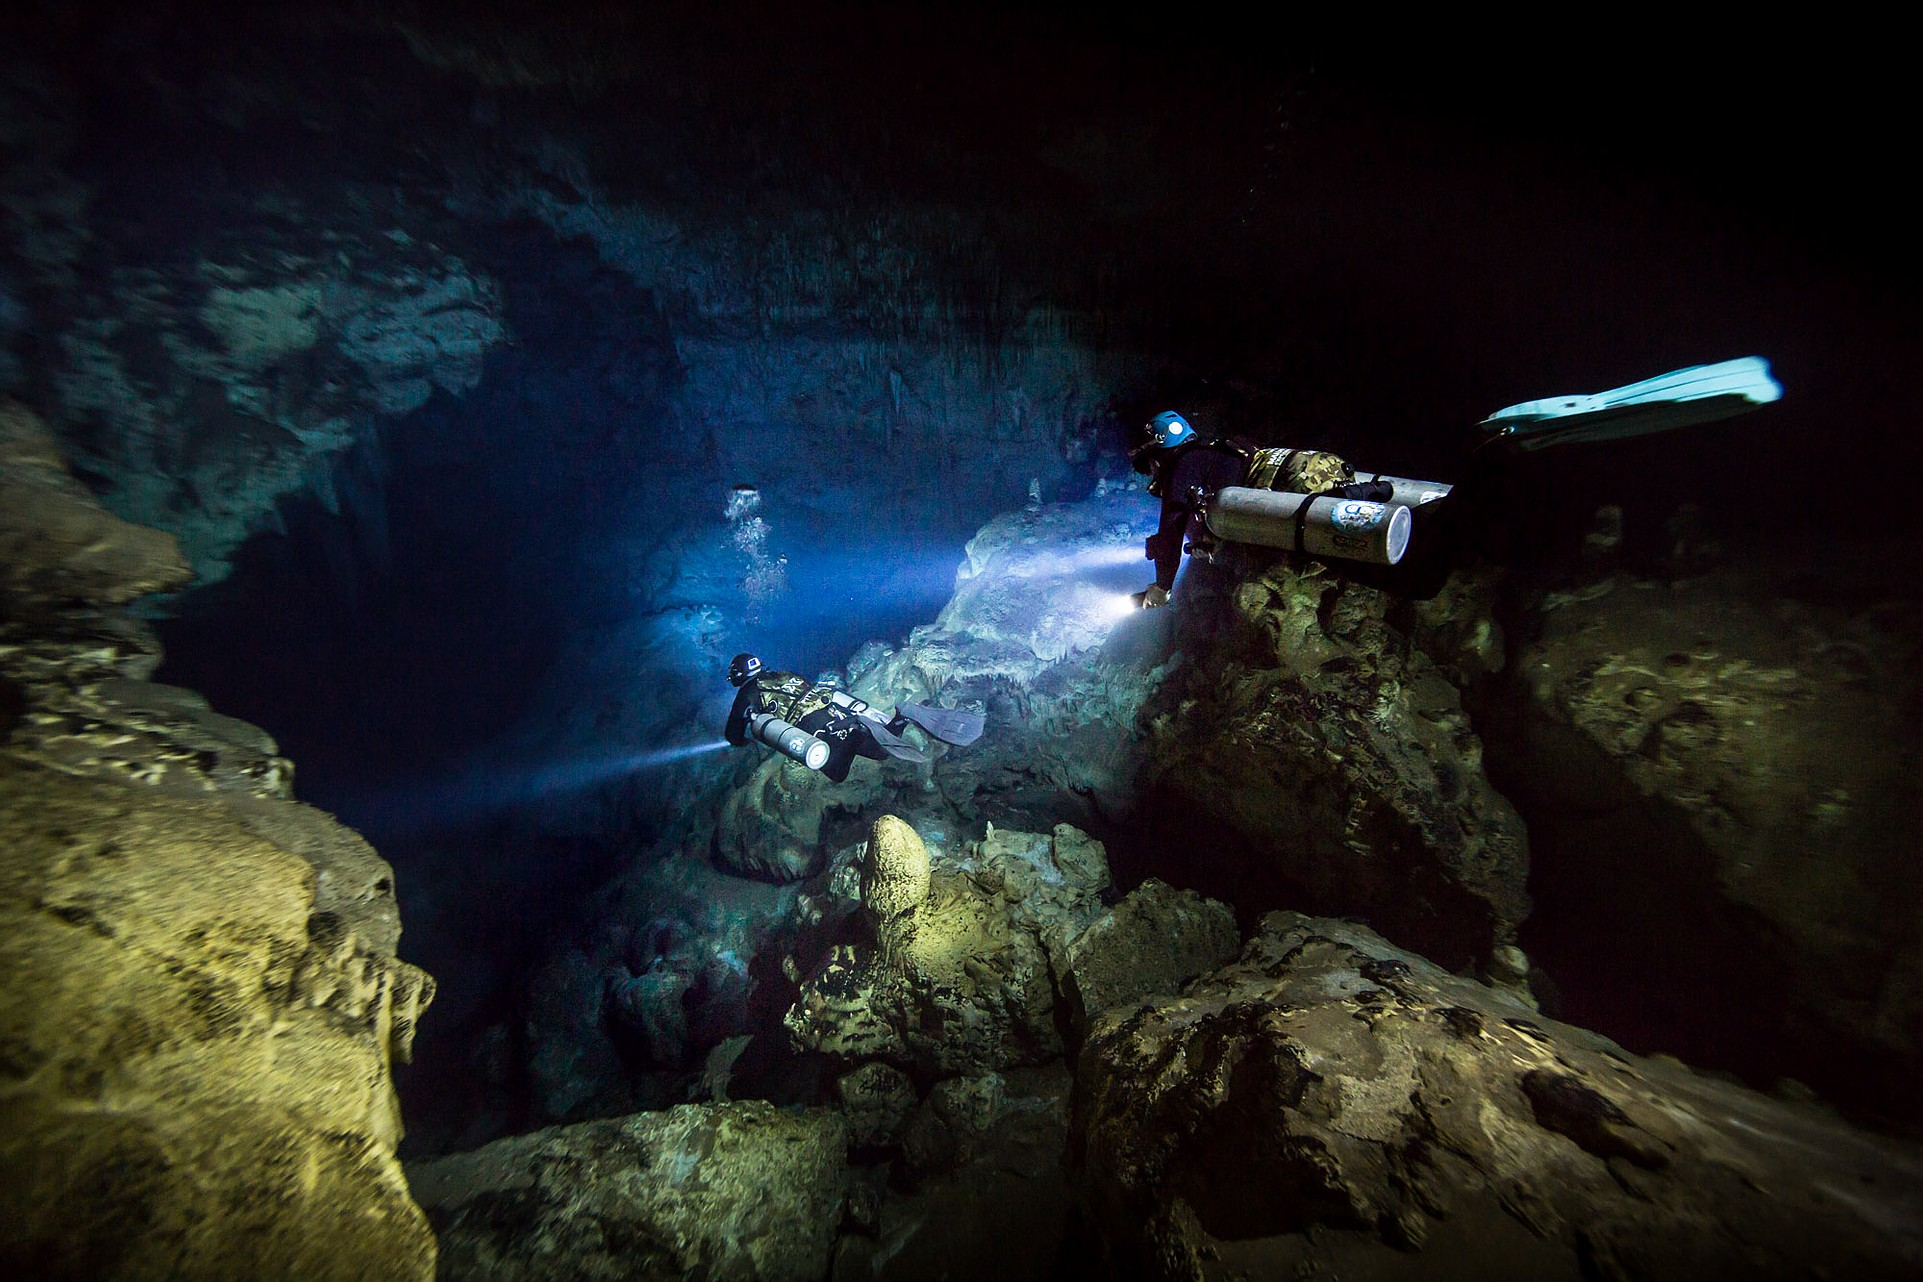 Divers descending into Vintany cave in Madagascar